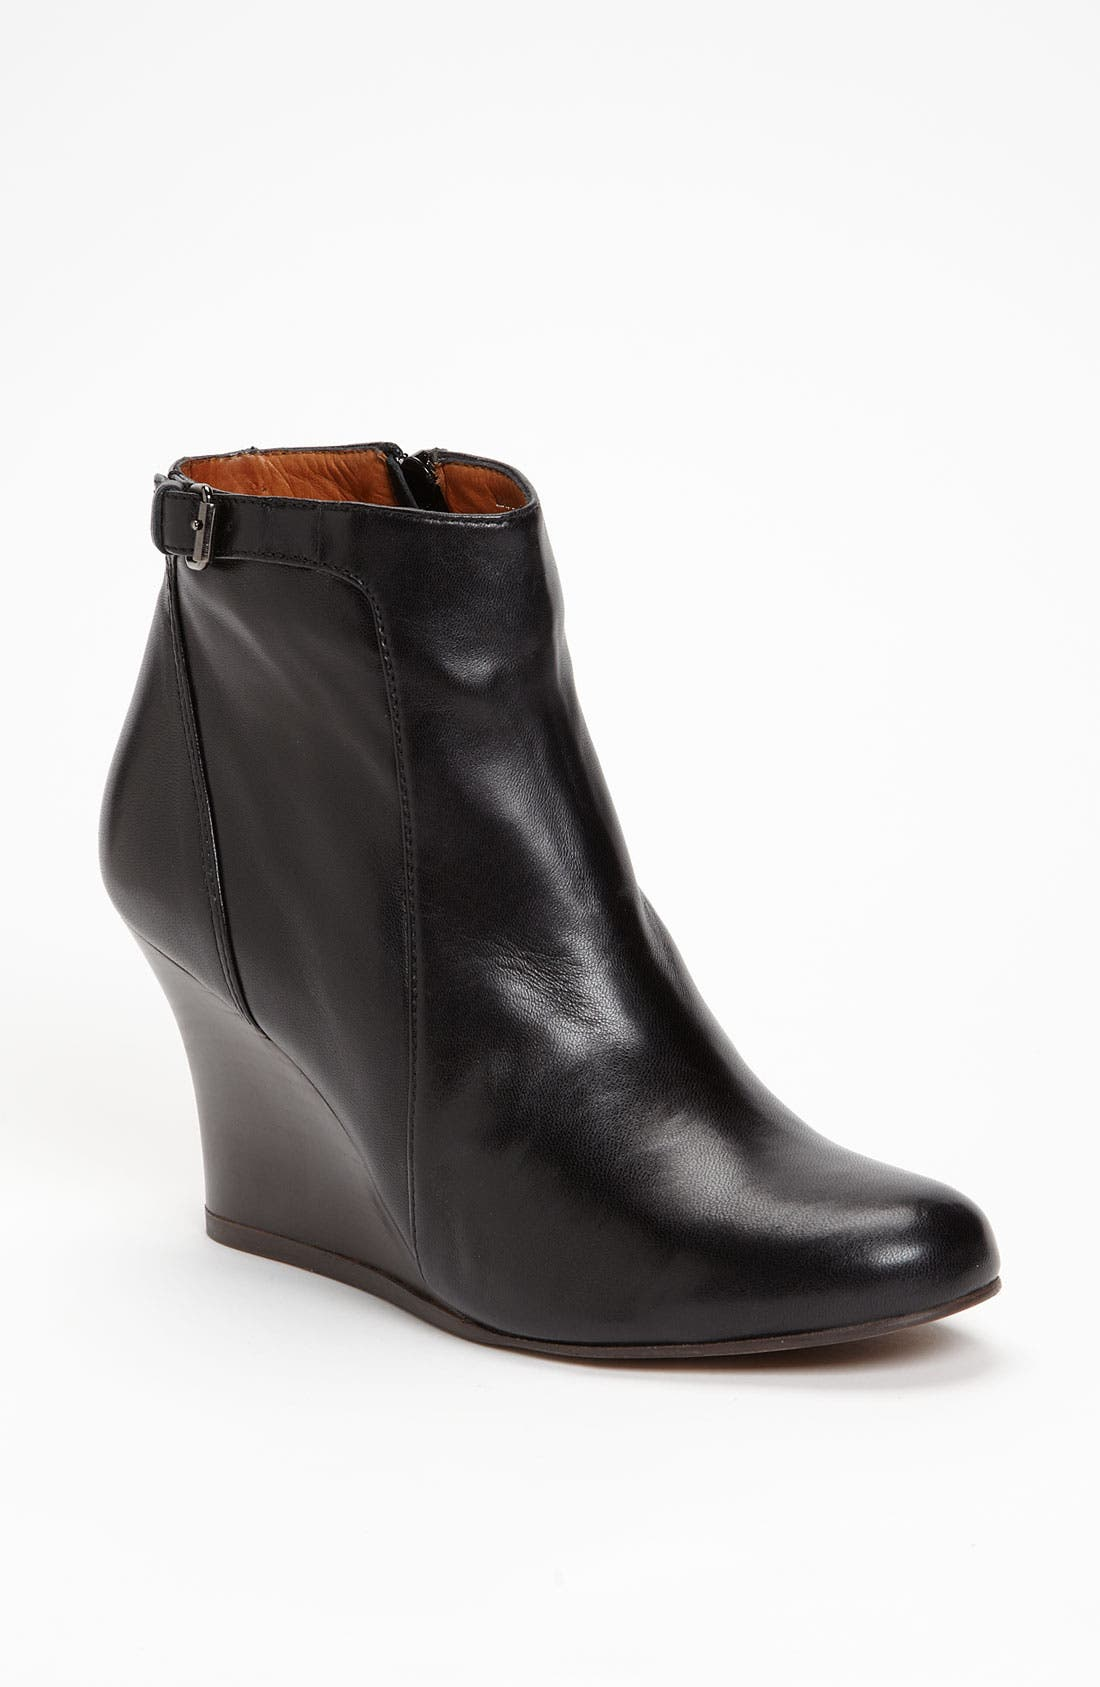 Alternate Image 1 Selected - Lanvin 'Faubourg' Wedge Bootie